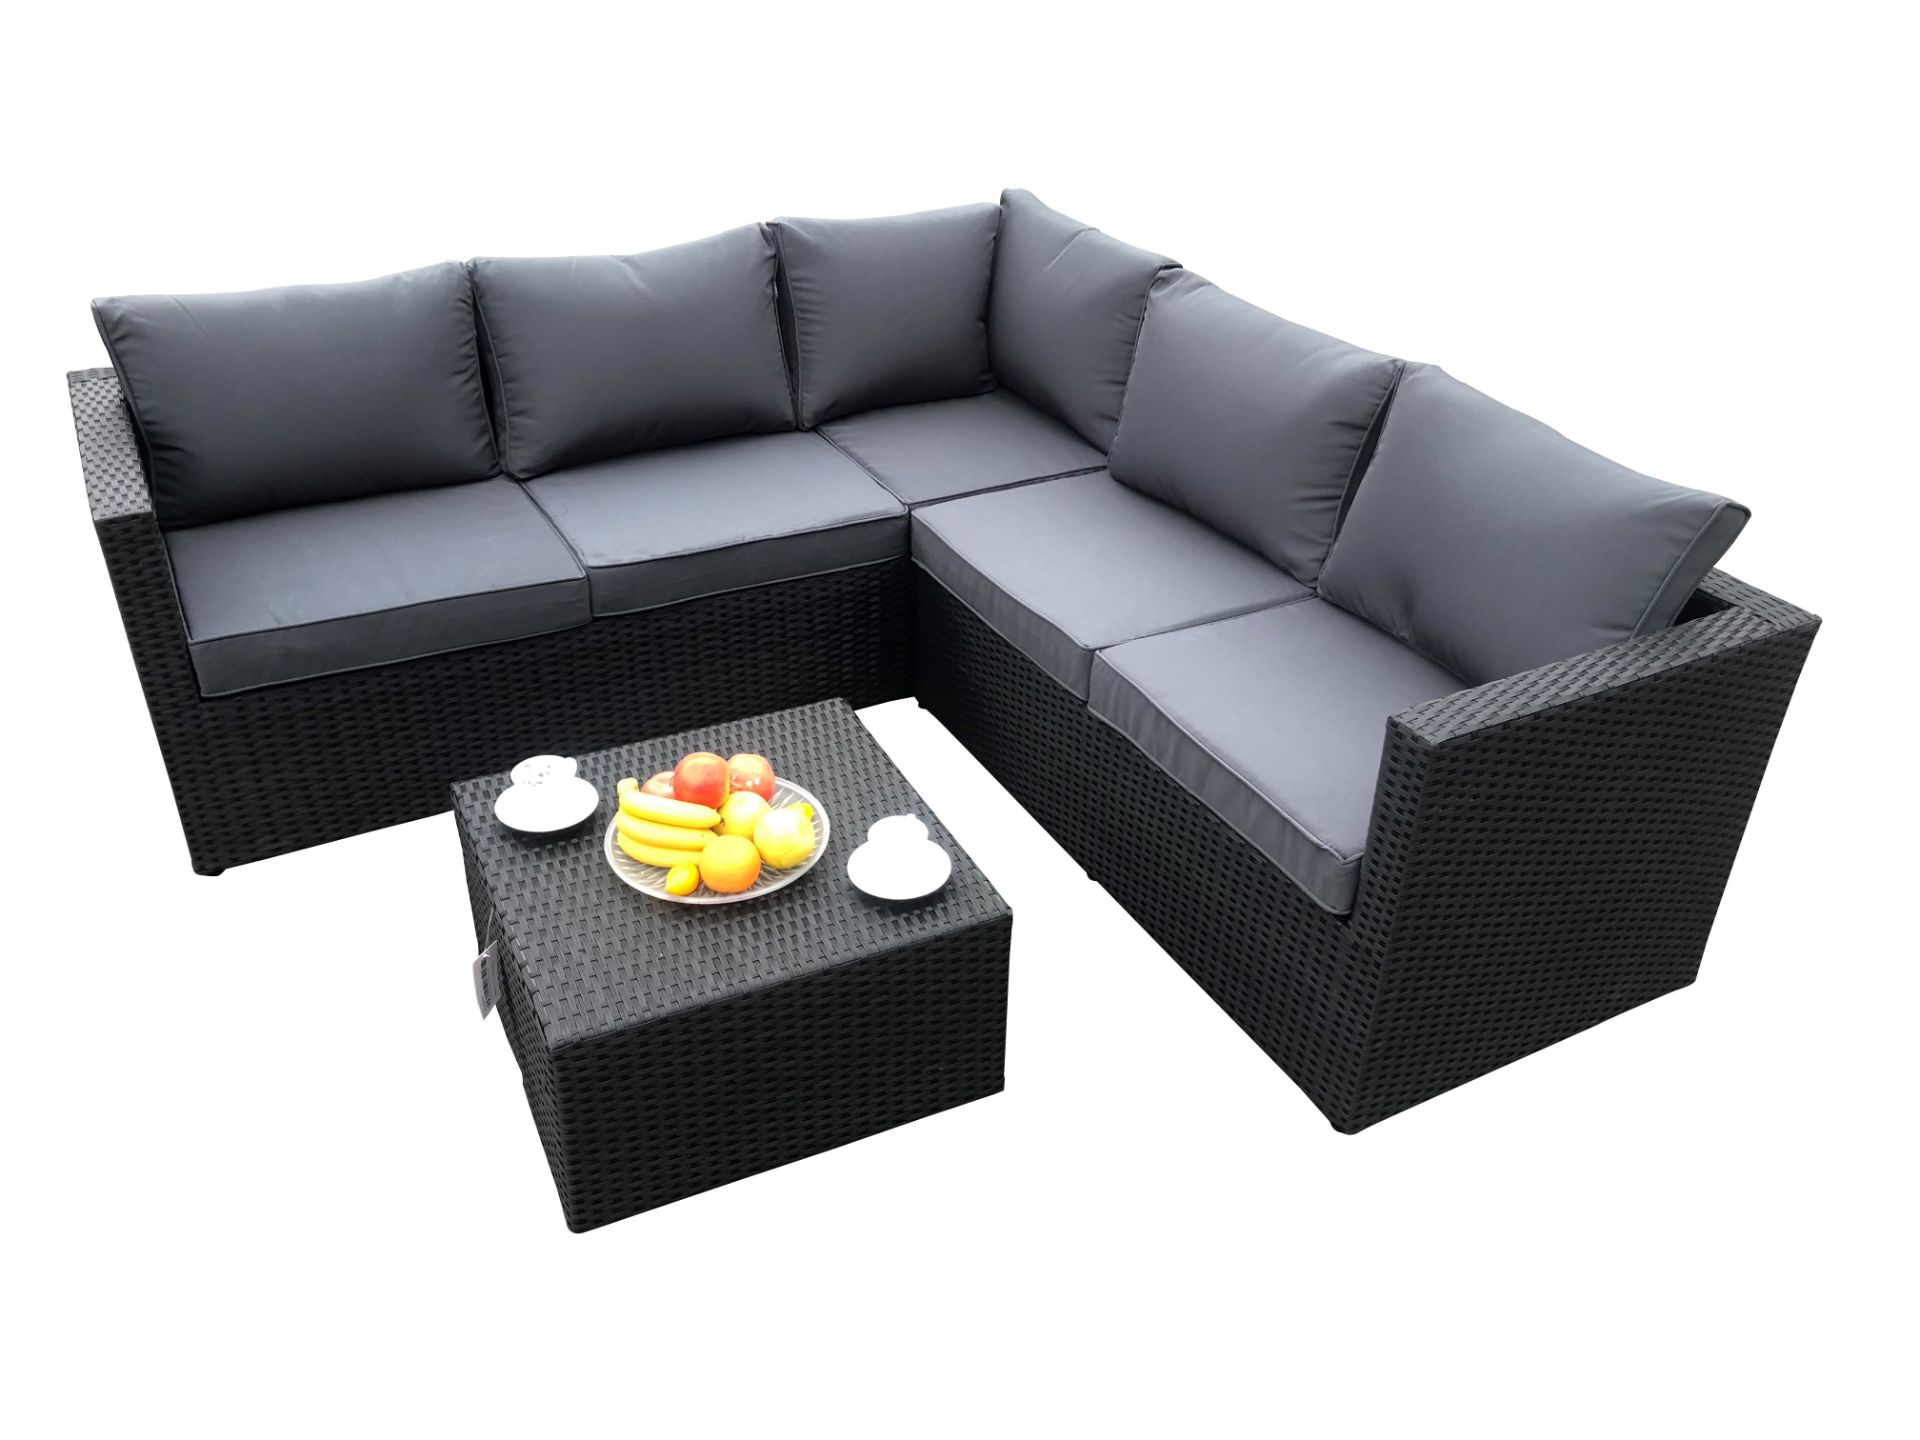 + VAT Brand New Chelsea Garden Company Six Seater Rattan Corner Sofa Set With Table - Steel Frame - - Image 2 of 2